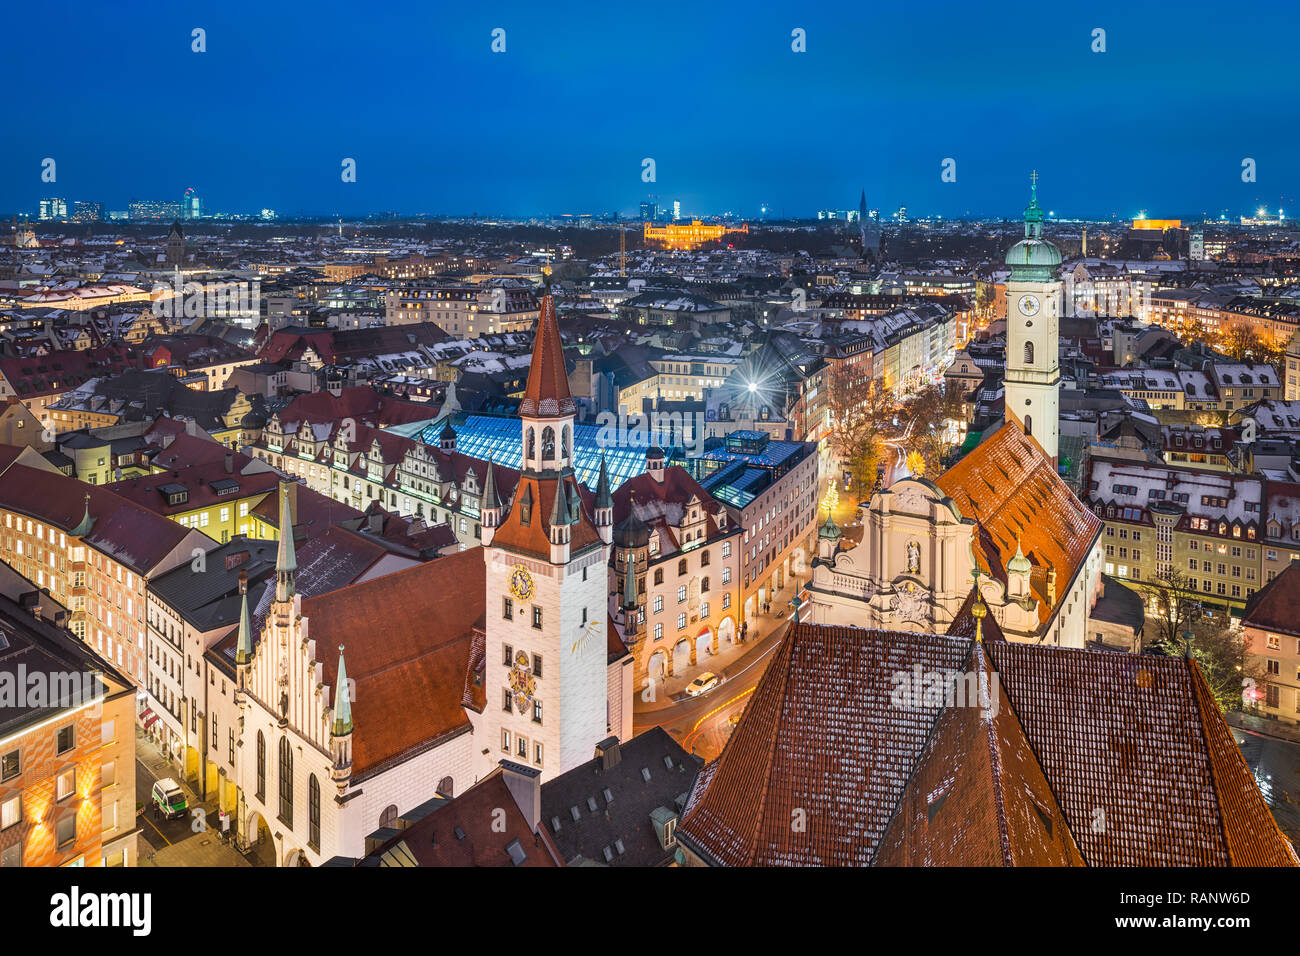 Aerial panorama of Munich city center, Germany - Stock Image